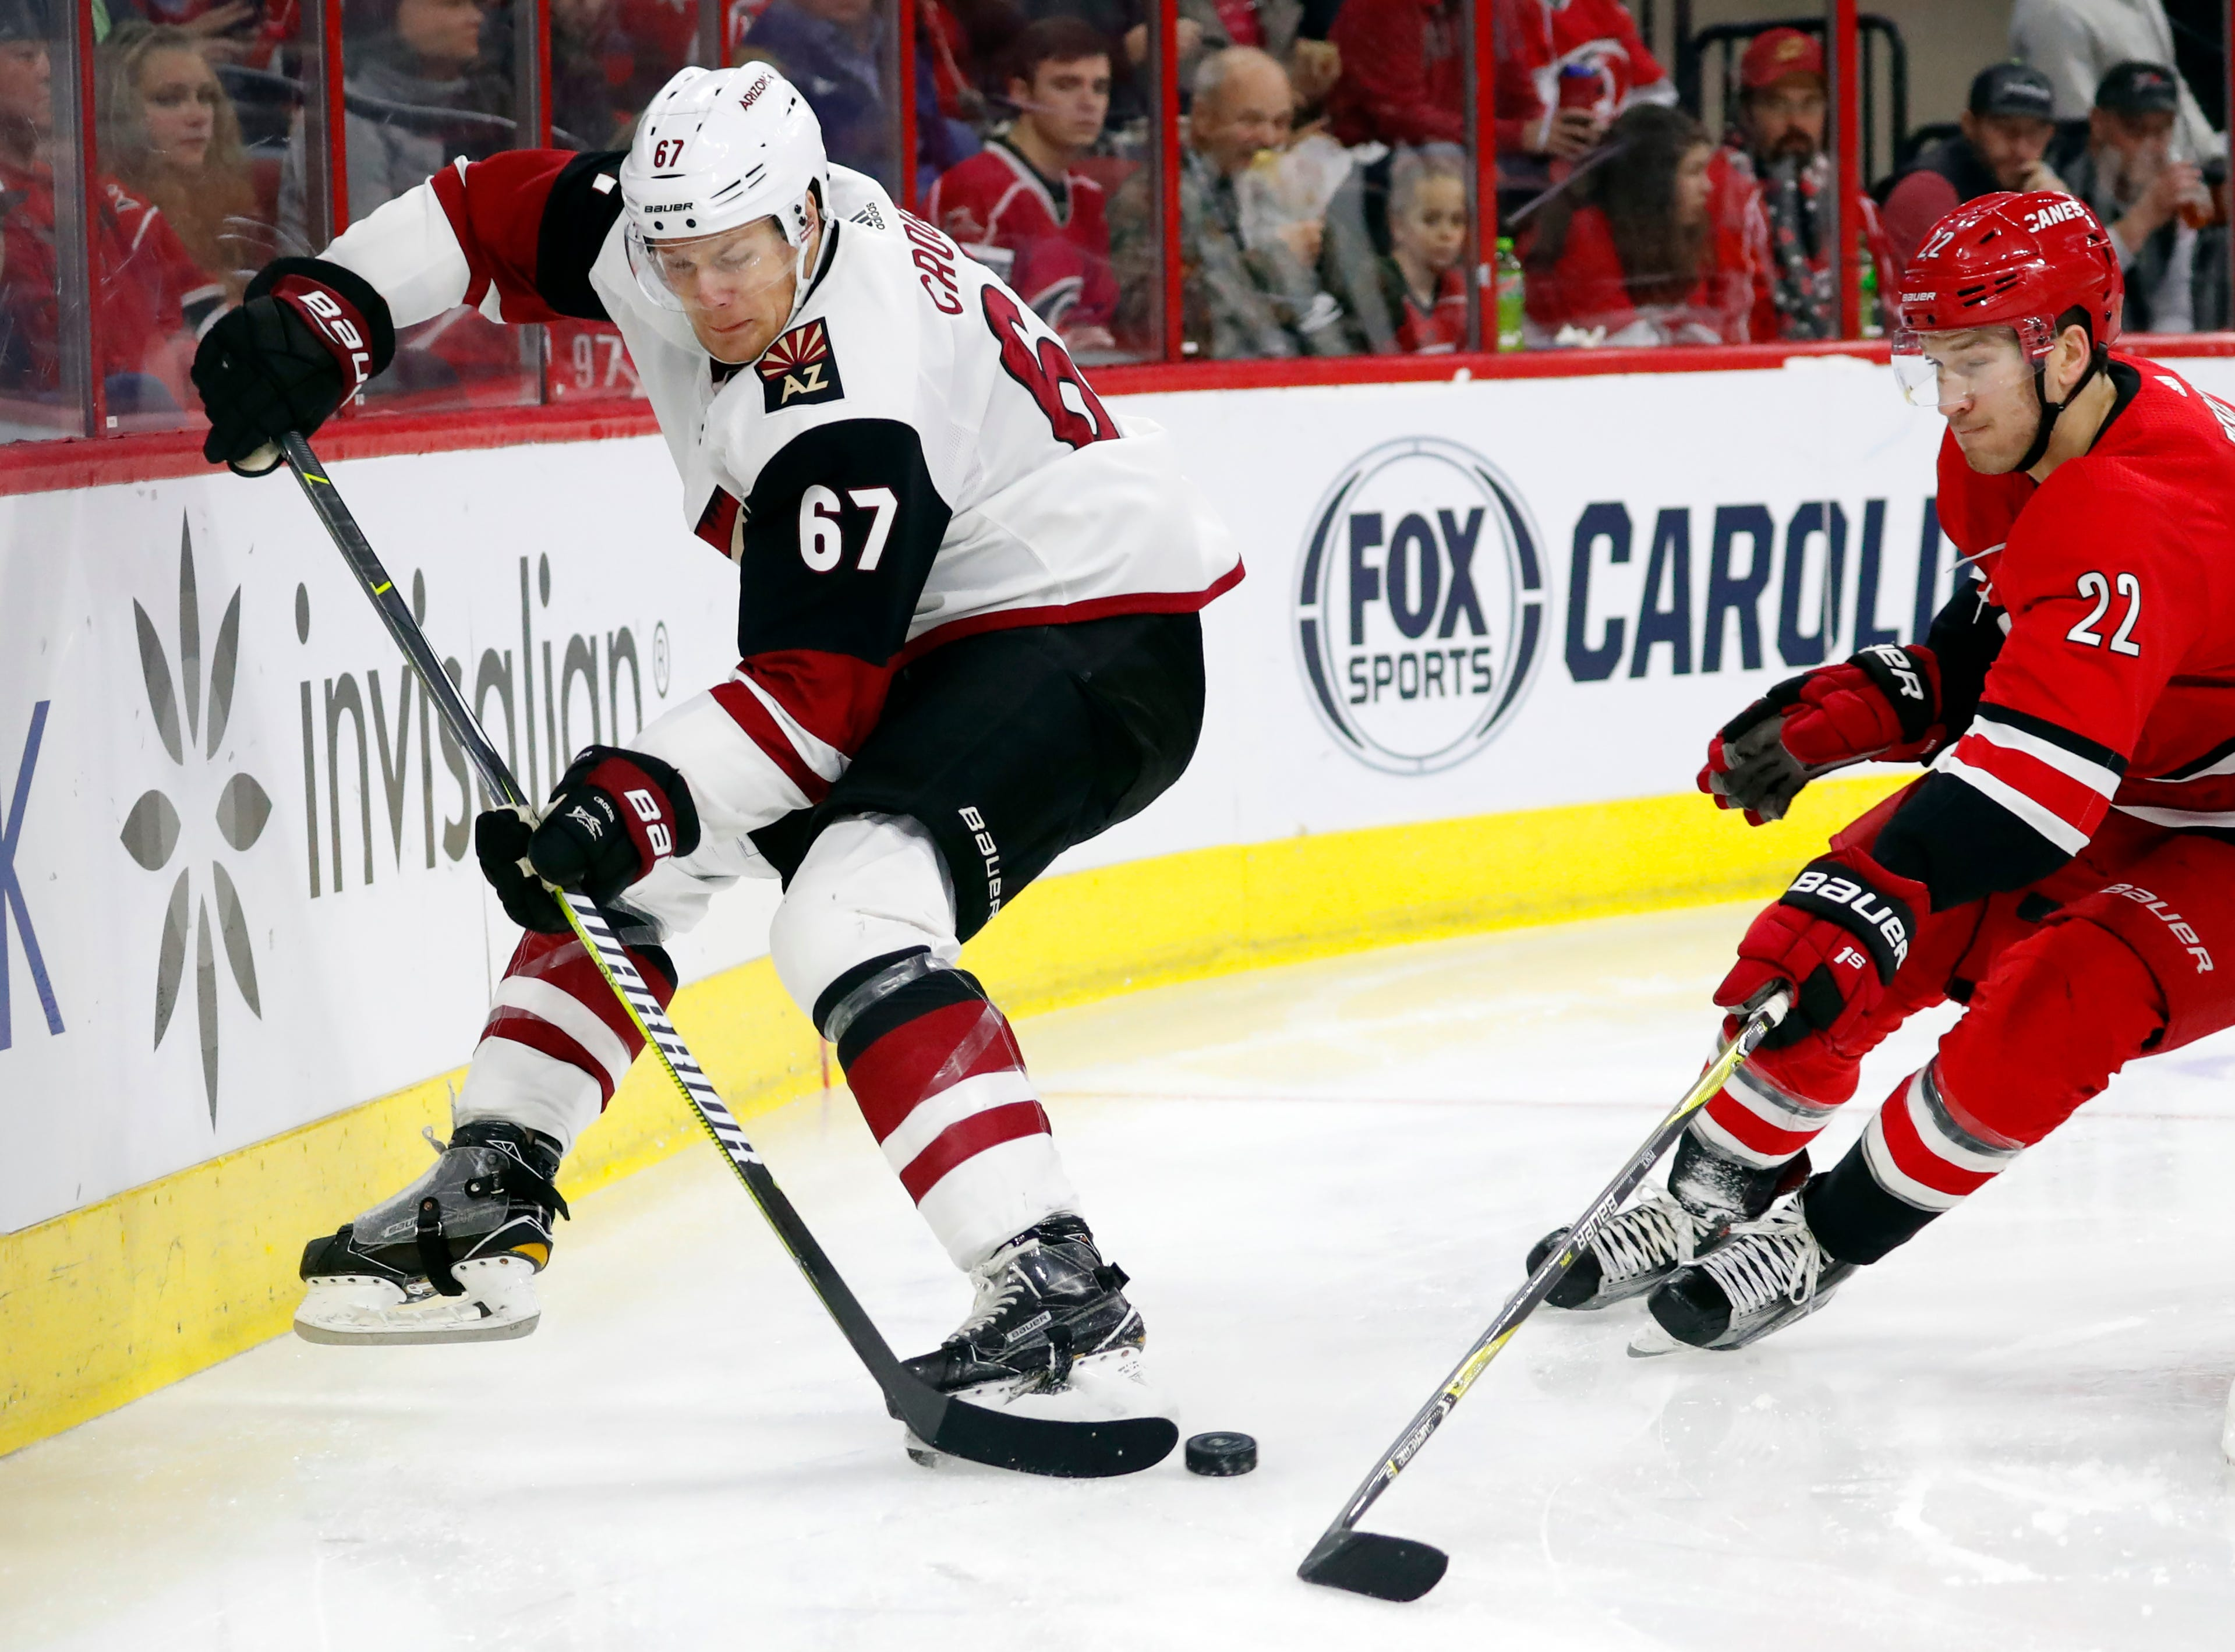 Arizona Coyotes' Lawson Crouse (67) battles behind the net with Carolina Hurricanes' Brett Pesce (22) during the second period of an NHL hockey game, Sunday, Dec. 16, 2018, in Raleigh, N.C.